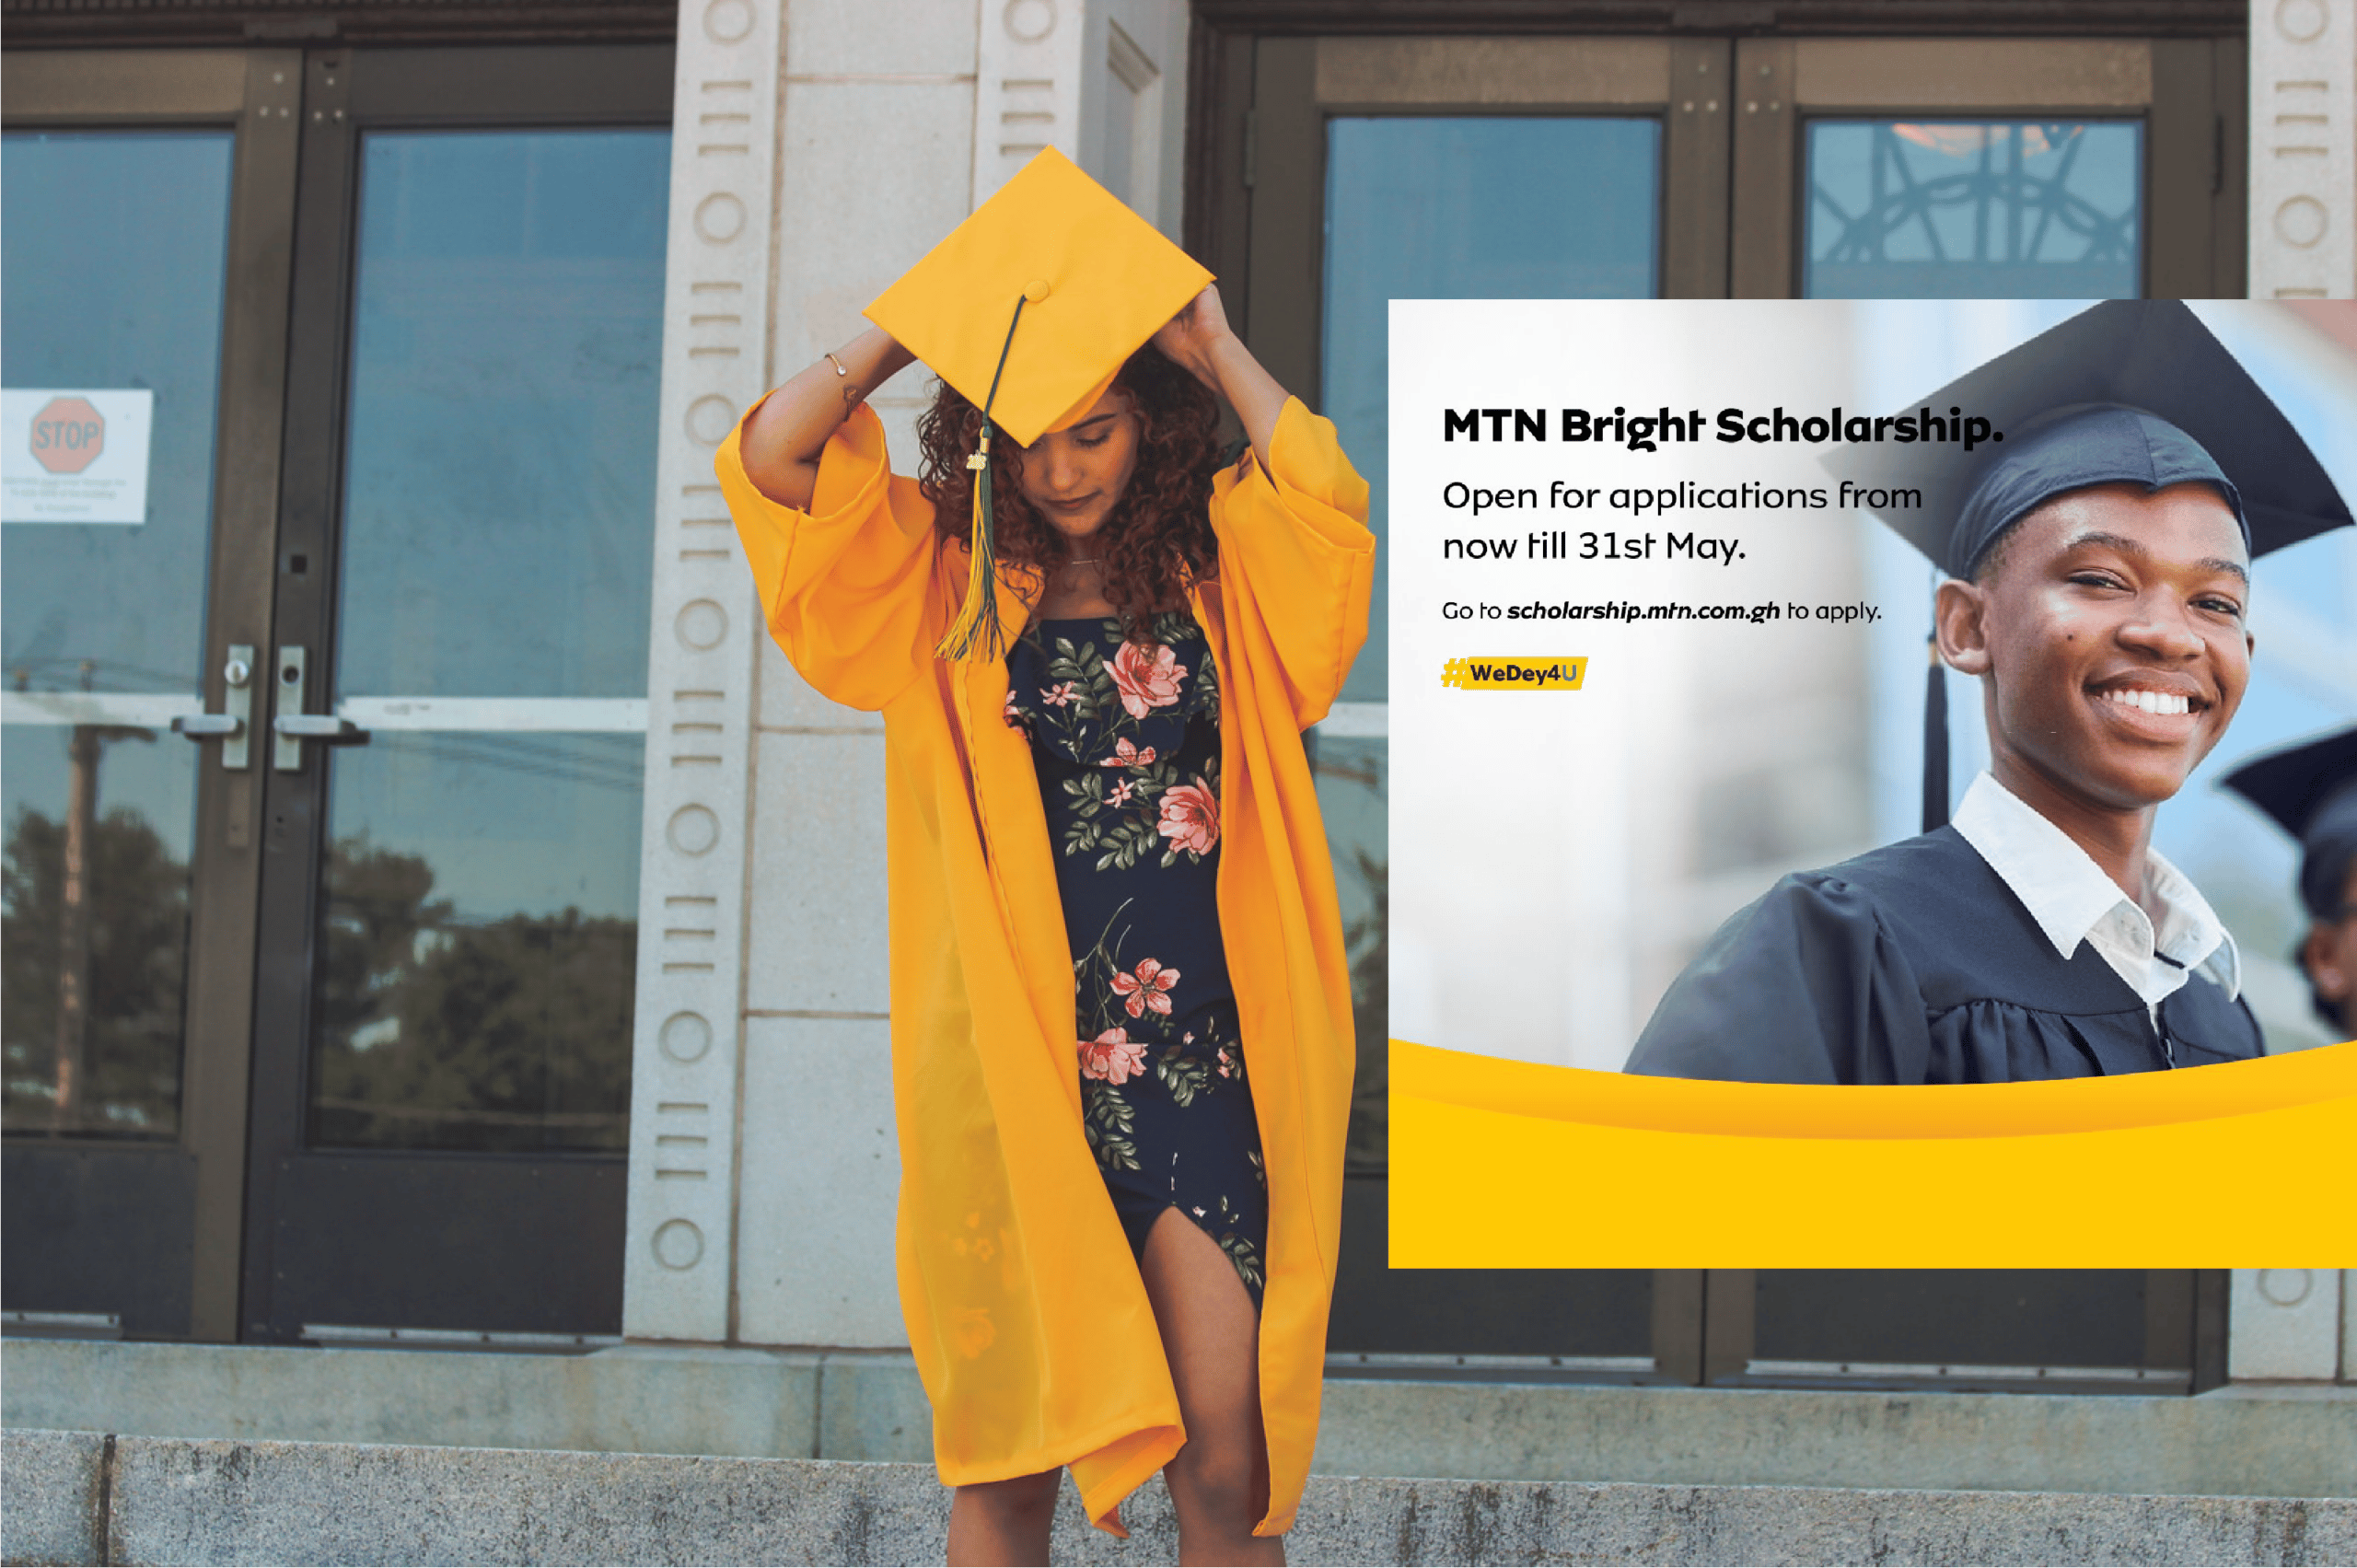 2020 Bright Scholarship: MTN Ghana invites tertiary level students to apply